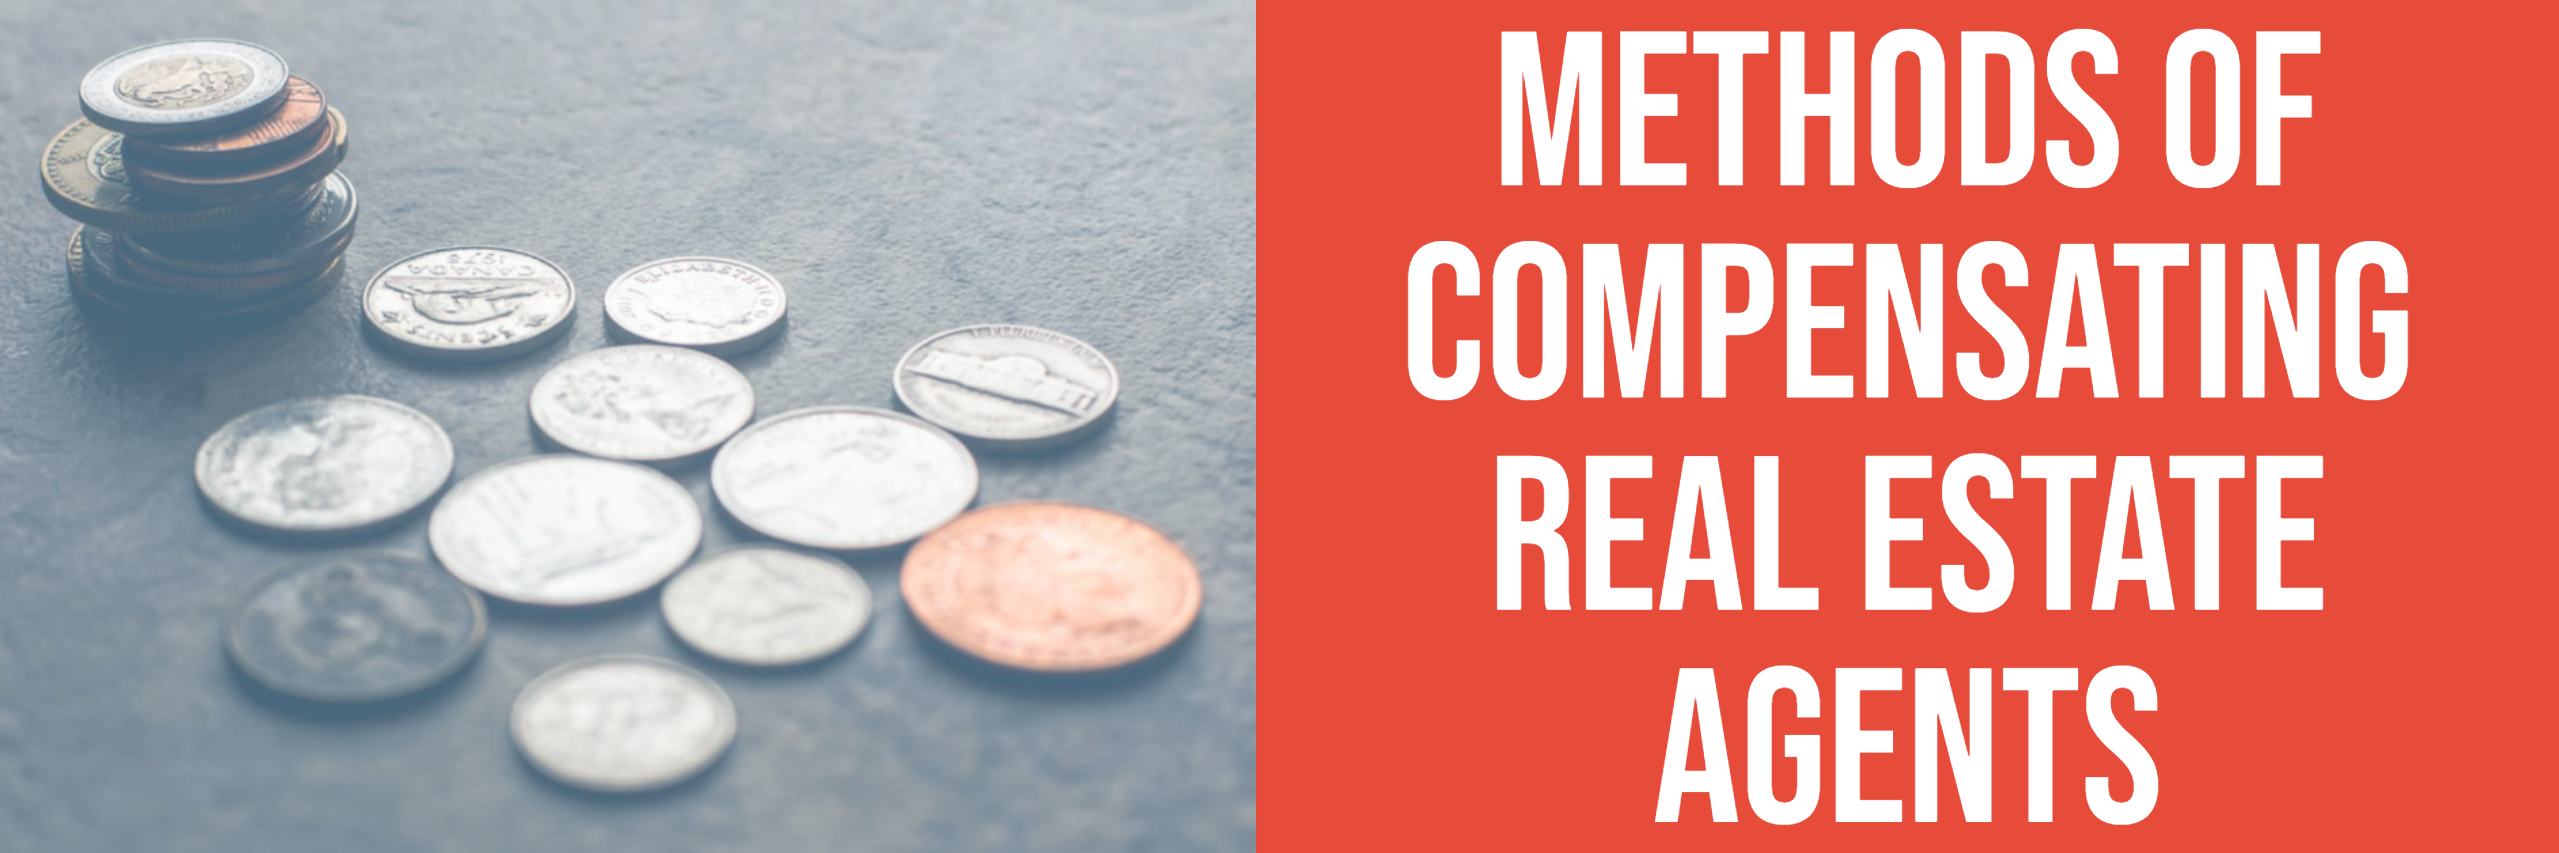 Methods of Compensating Real Estate Agents